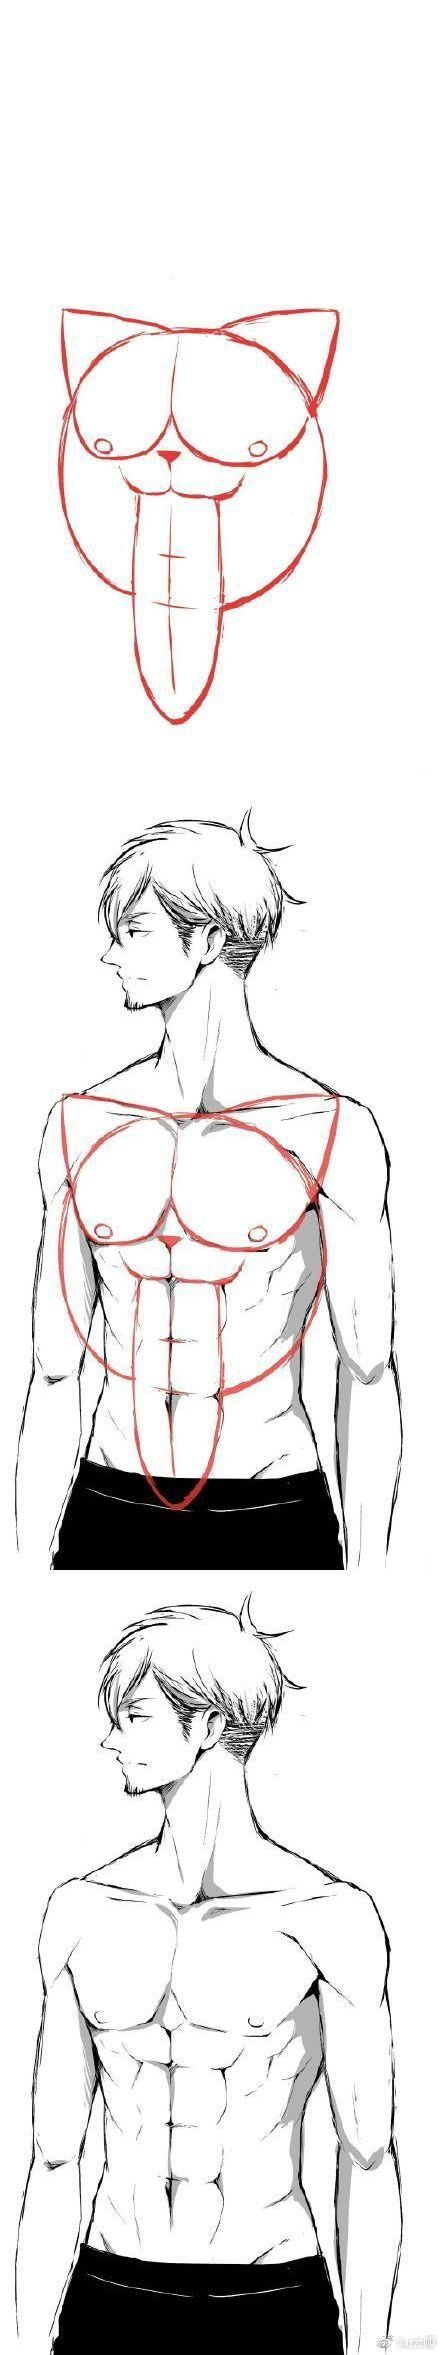 Well, that's... one way to draw abs. -- Drawing tools, inspiration, creativity, tutorial, step by step, guide, how to, pose, handsome and attractive man, hot male, torso, muscular